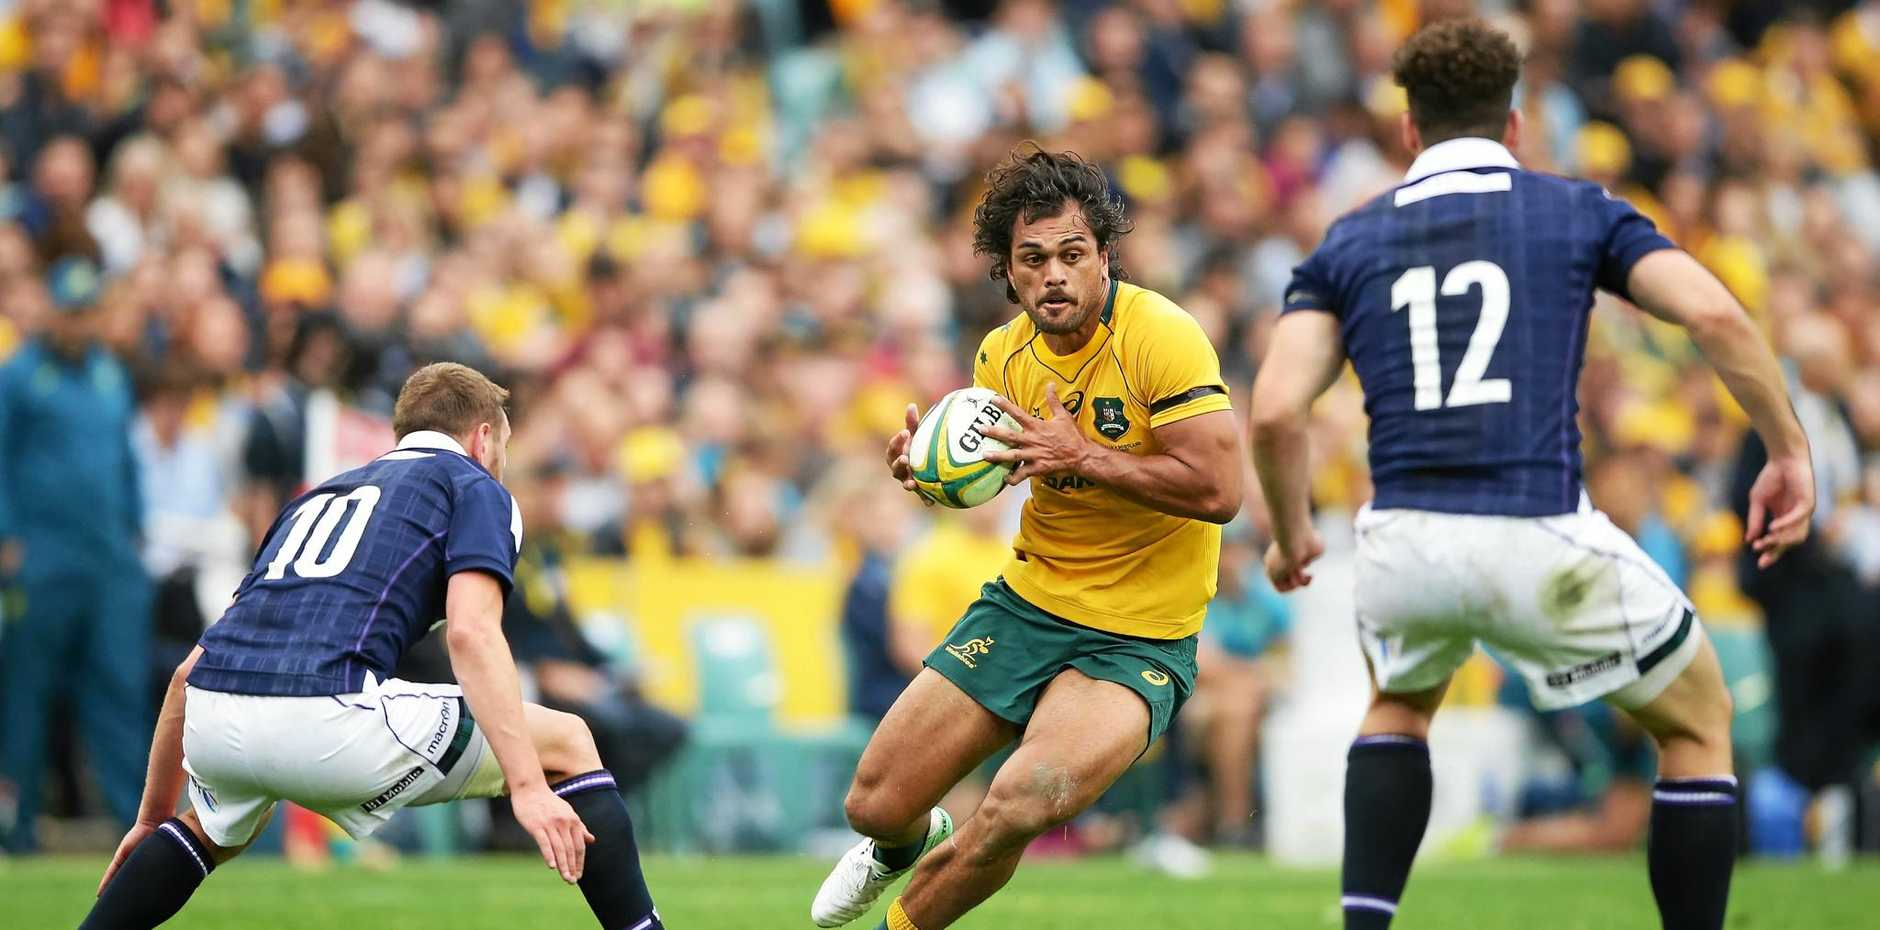 Karmichael Hunt of the Wallabies runs with the ball during the Test match against Scotland at Allianz Stadium.